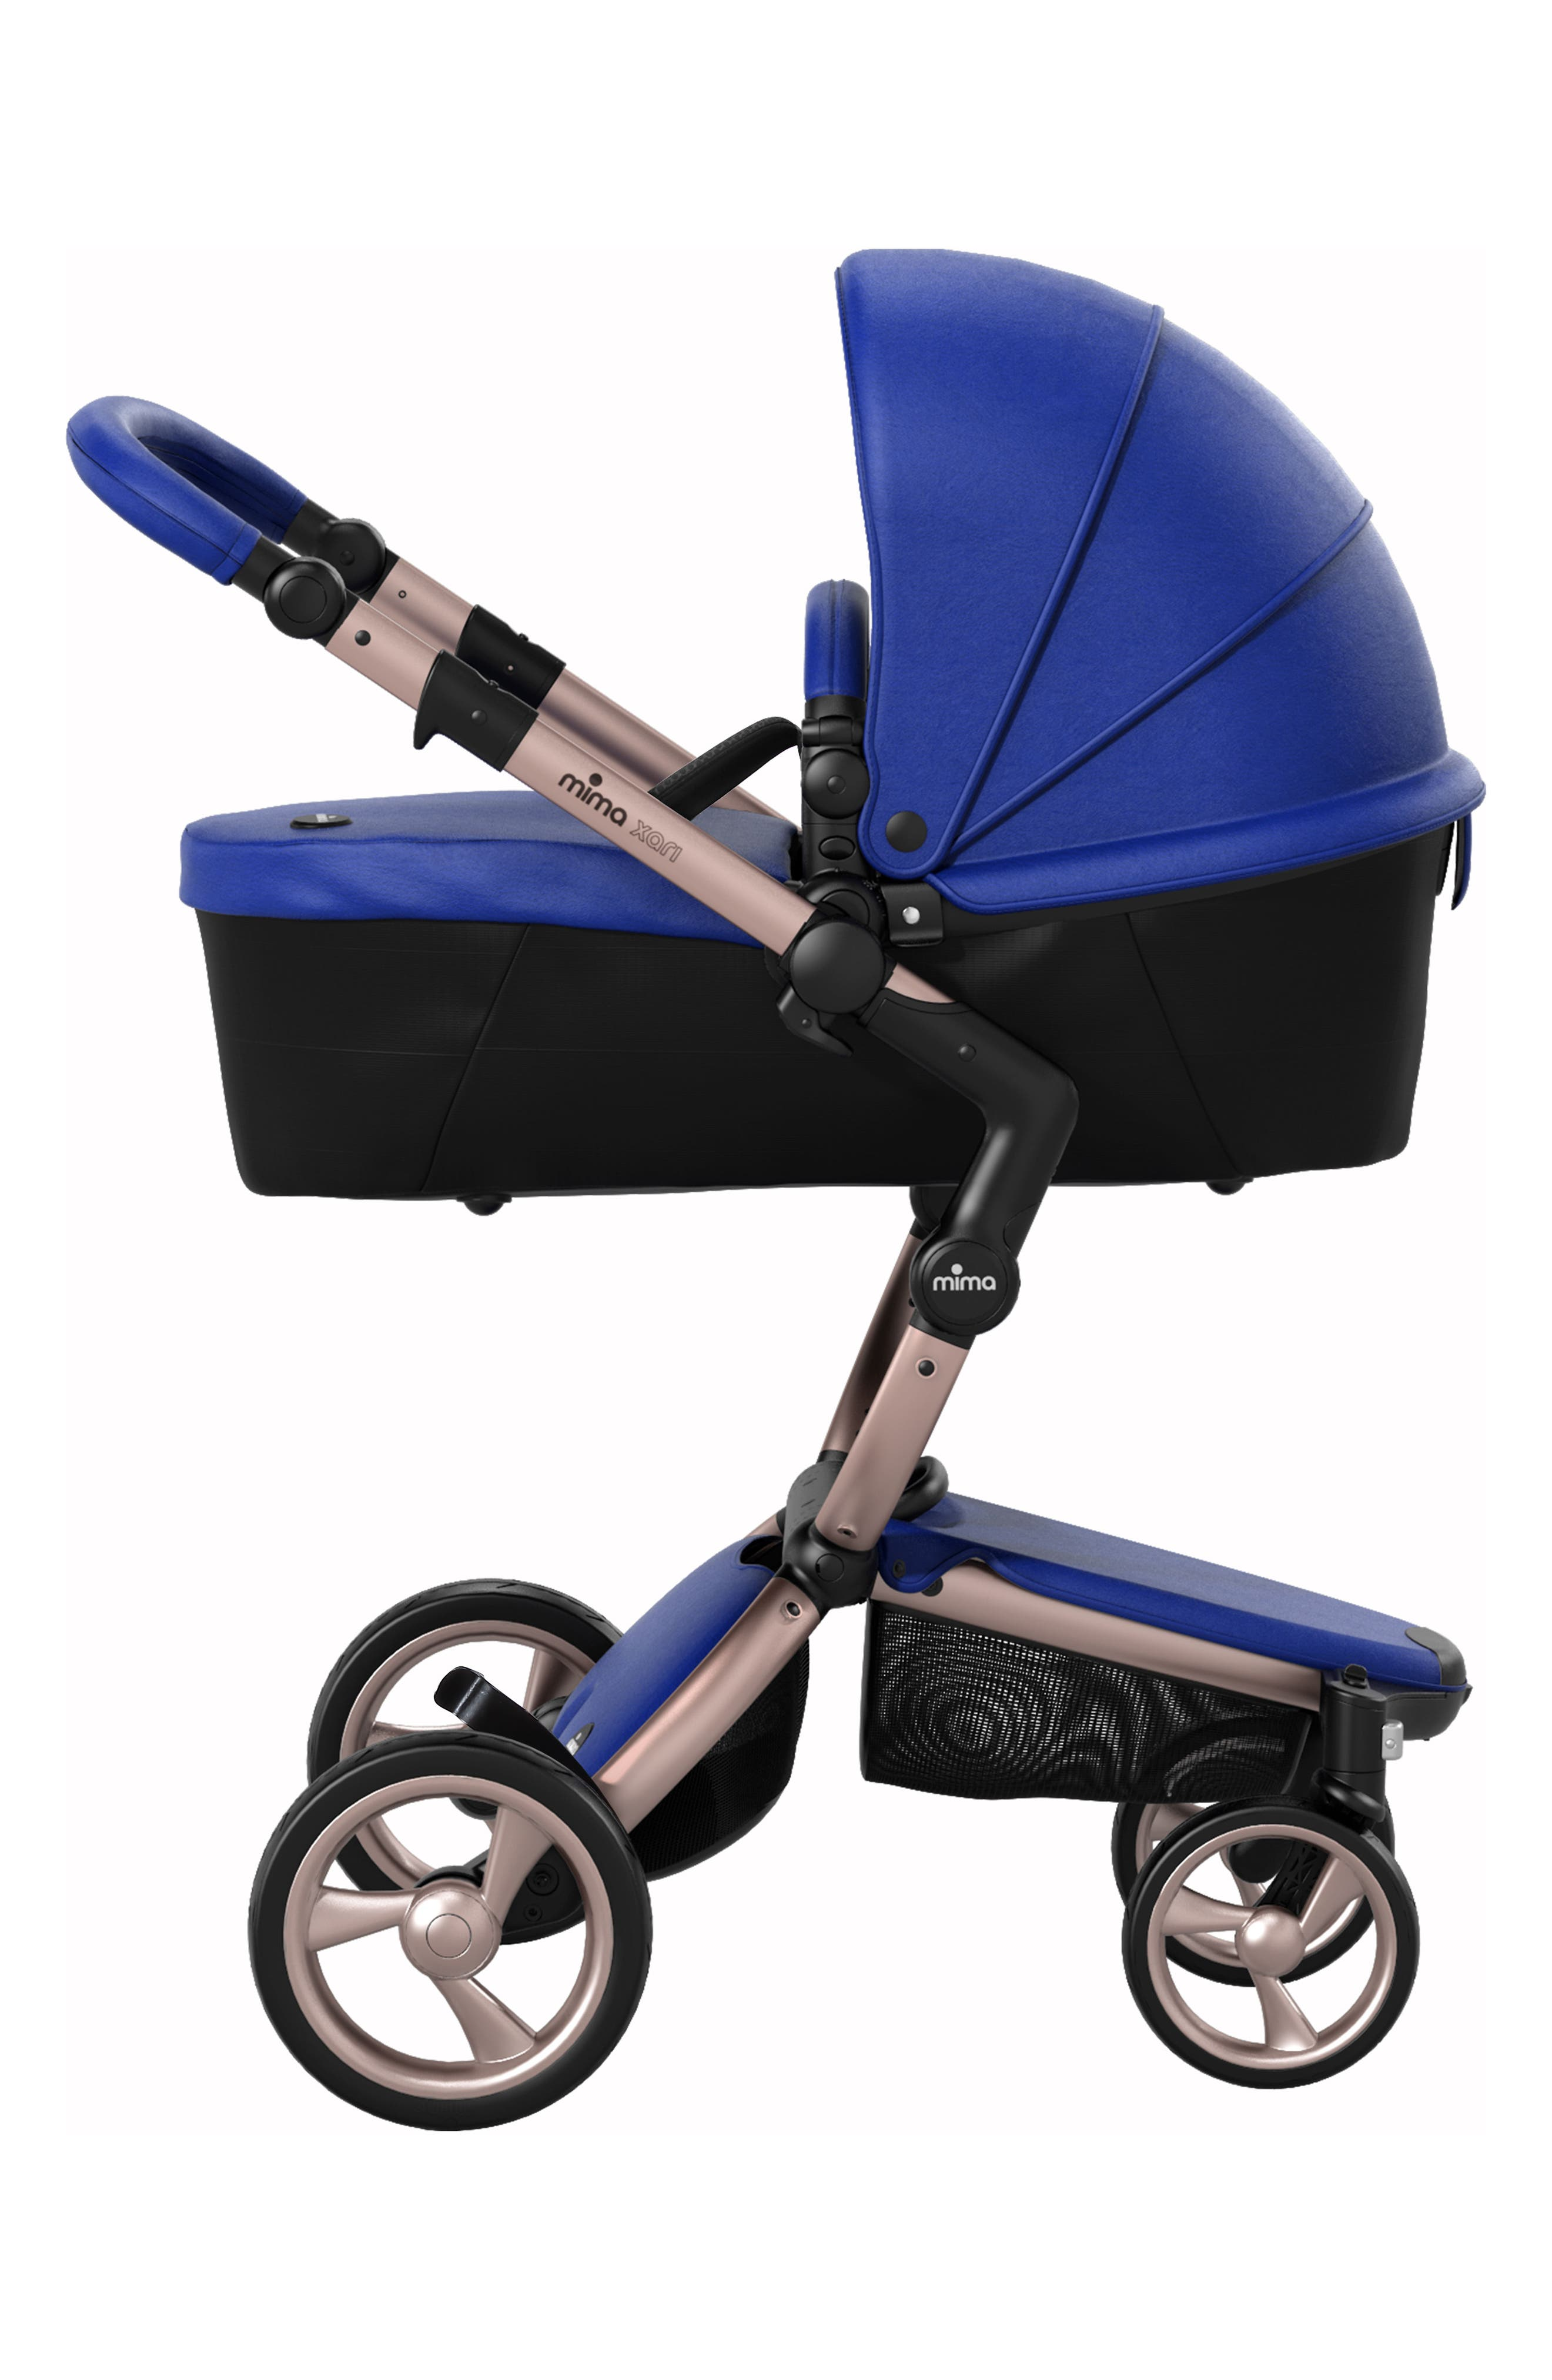 Xari Rose Gold Chassis Stroller with Reversible Reclining Seat & Carrycot,                             Alternate thumbnail 2, color,                             Royal Blue/ Black